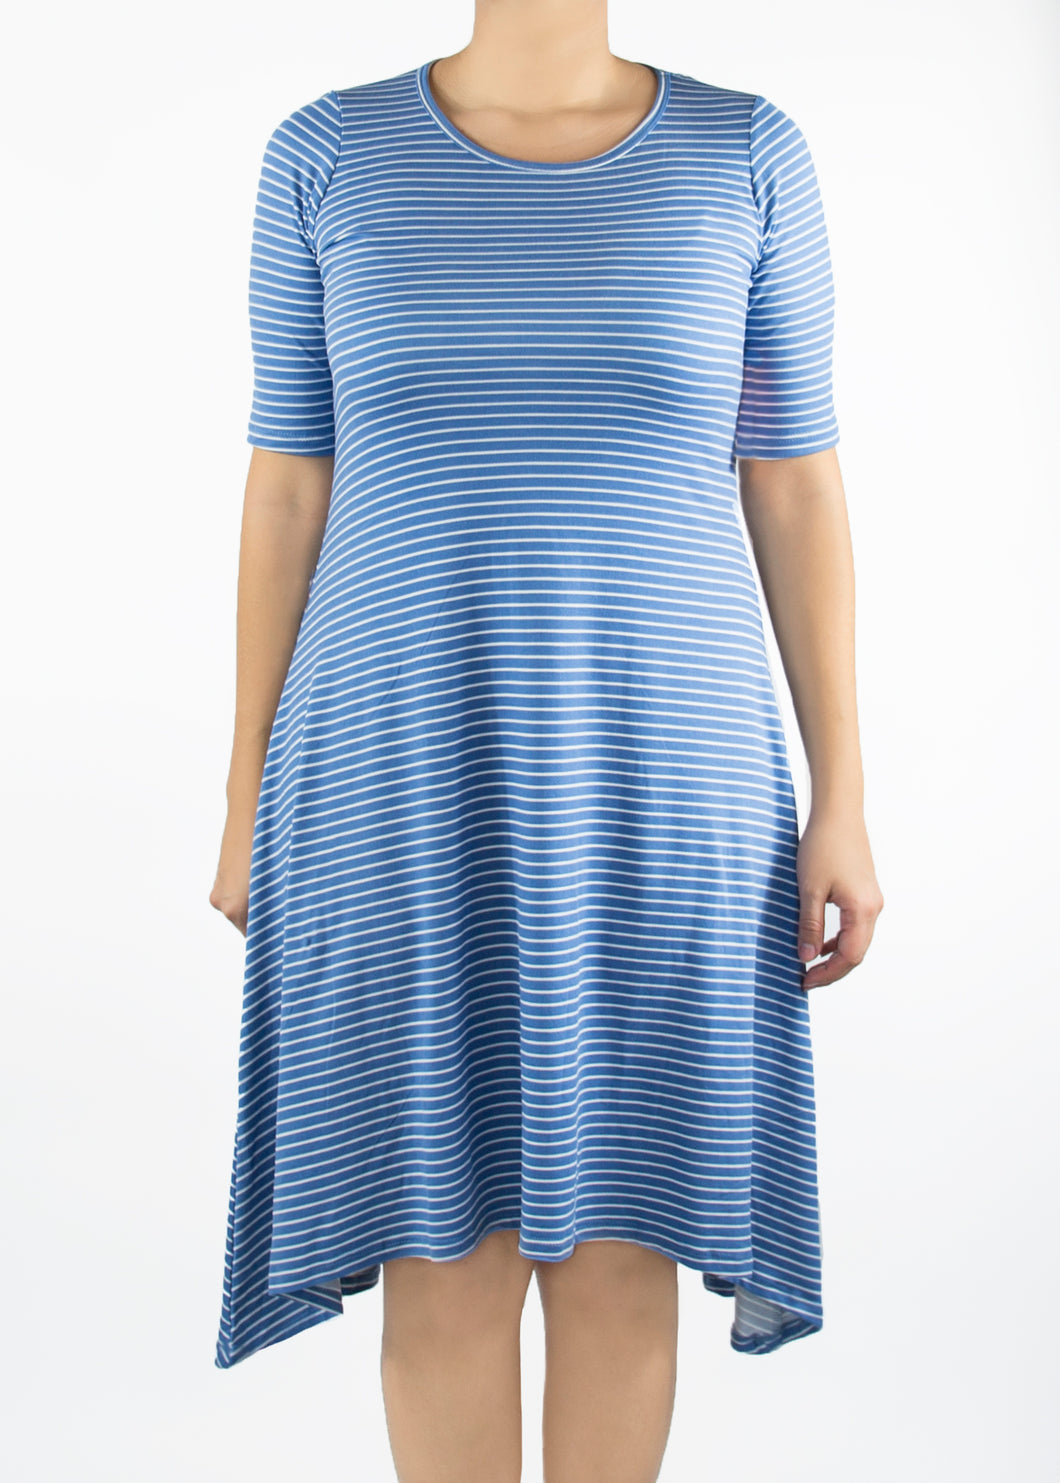 Poppy Dress - XS - Blue and White Stripes